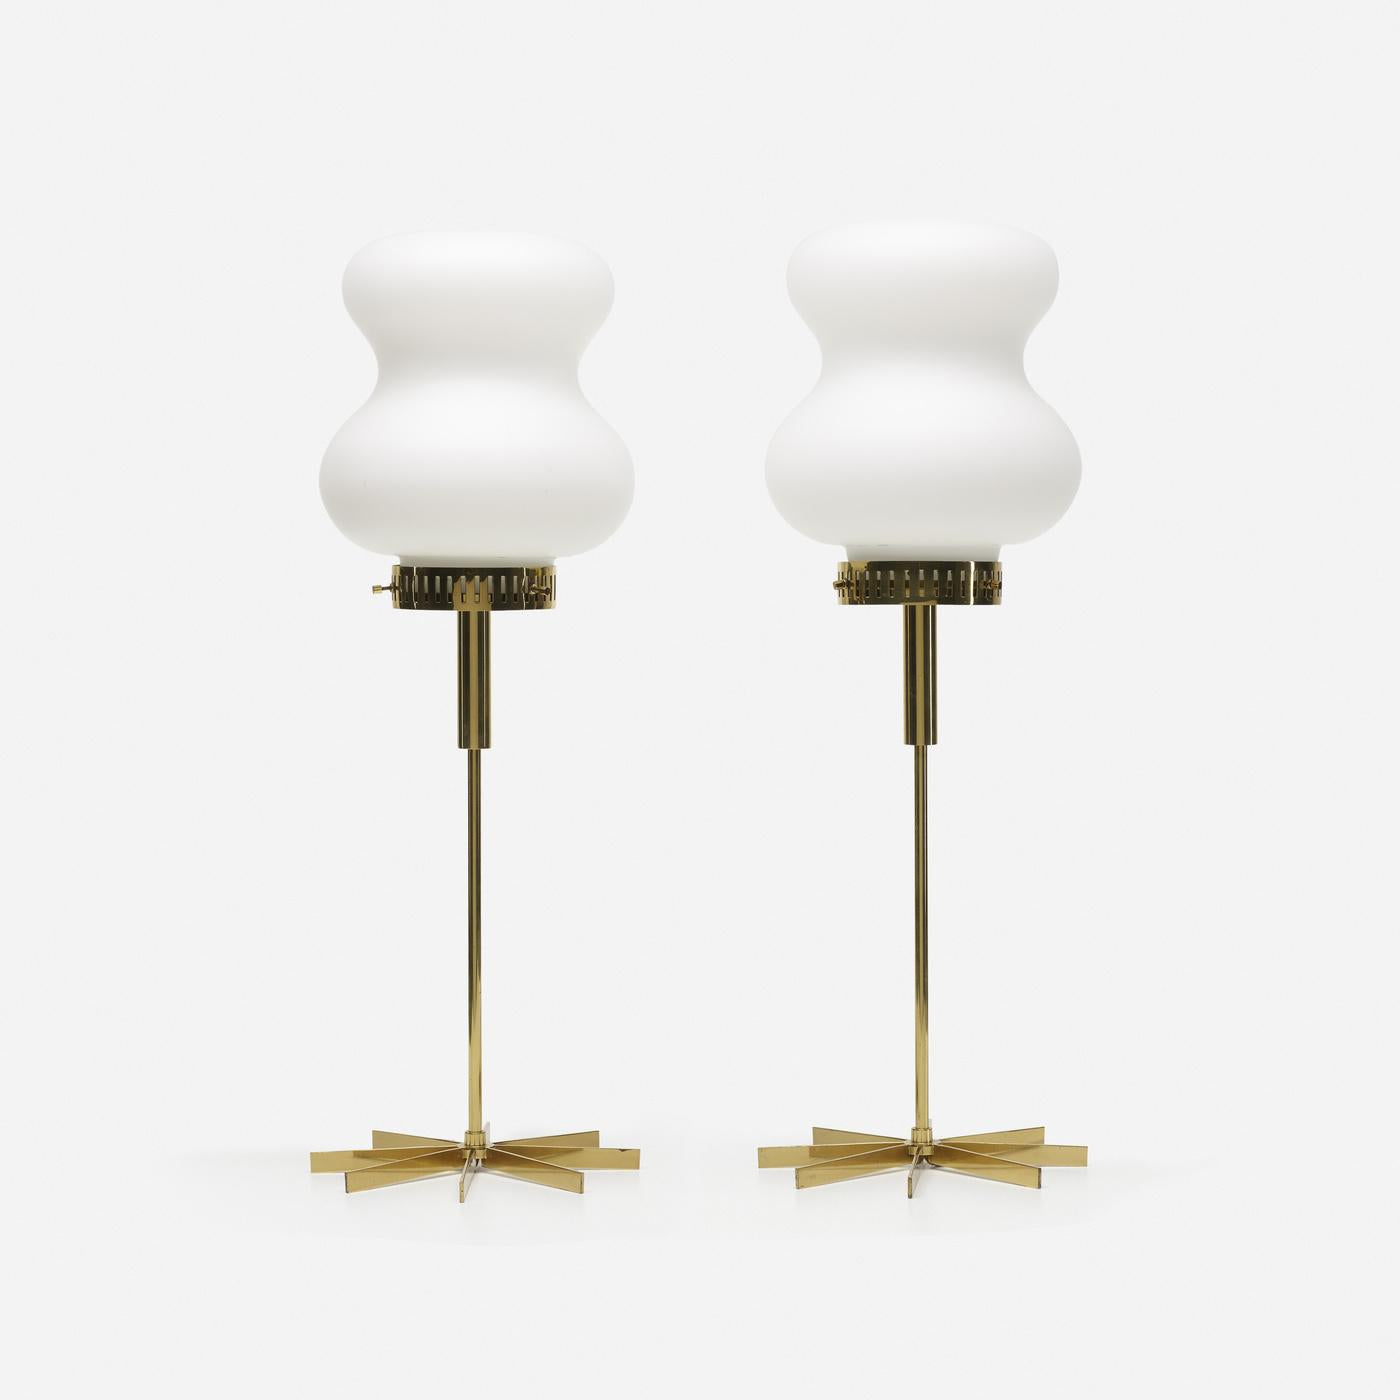 Stilnovo table lamps (2)